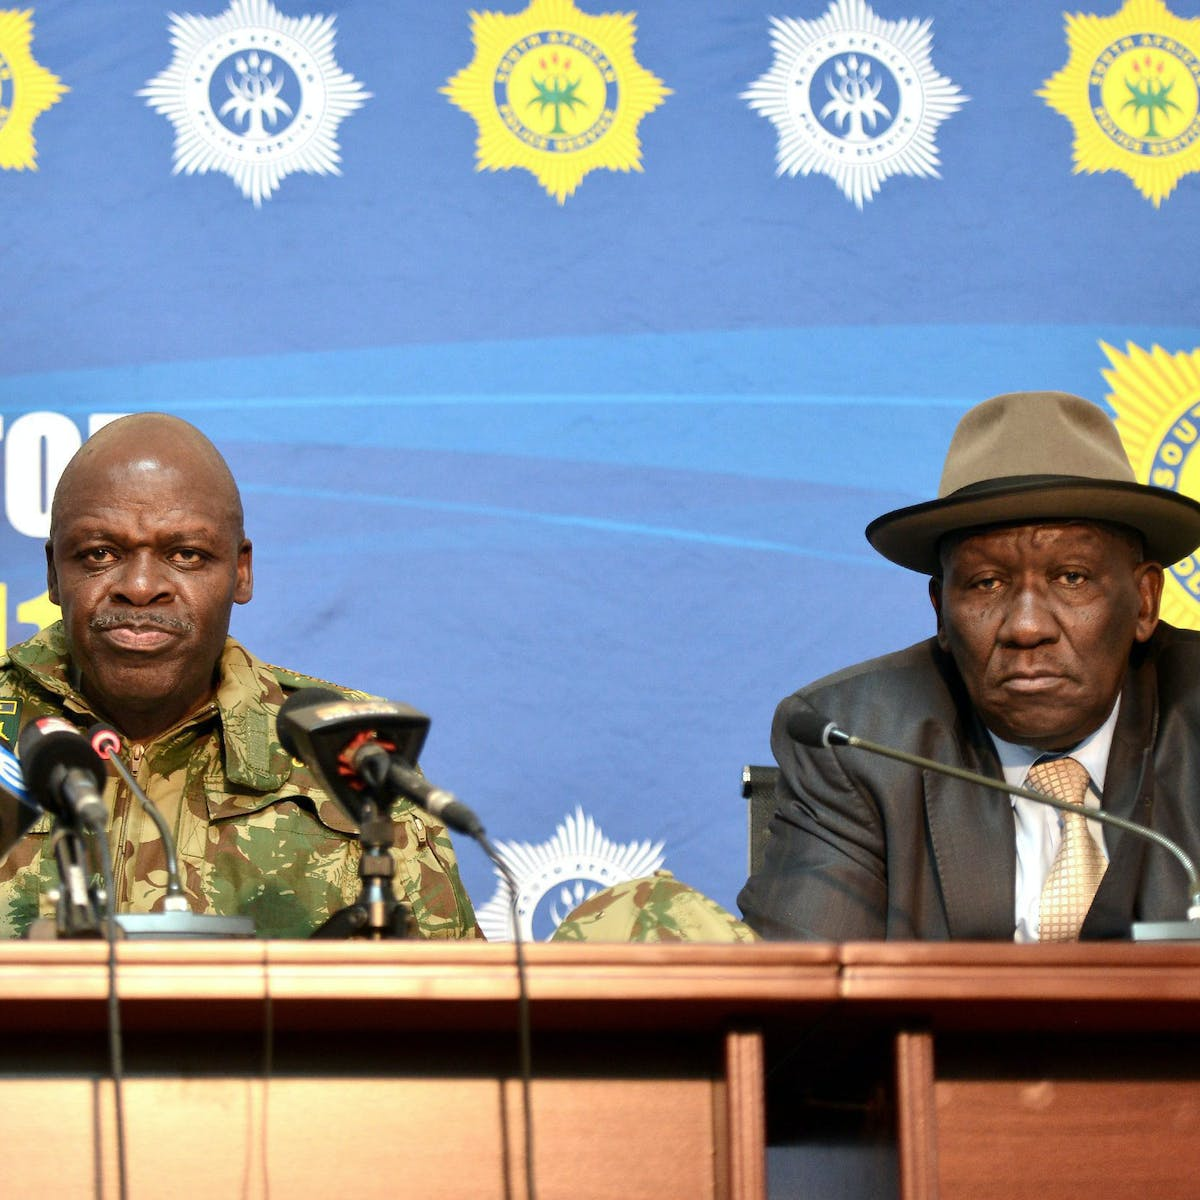 Police strategy to reduce violent crime in South Africa